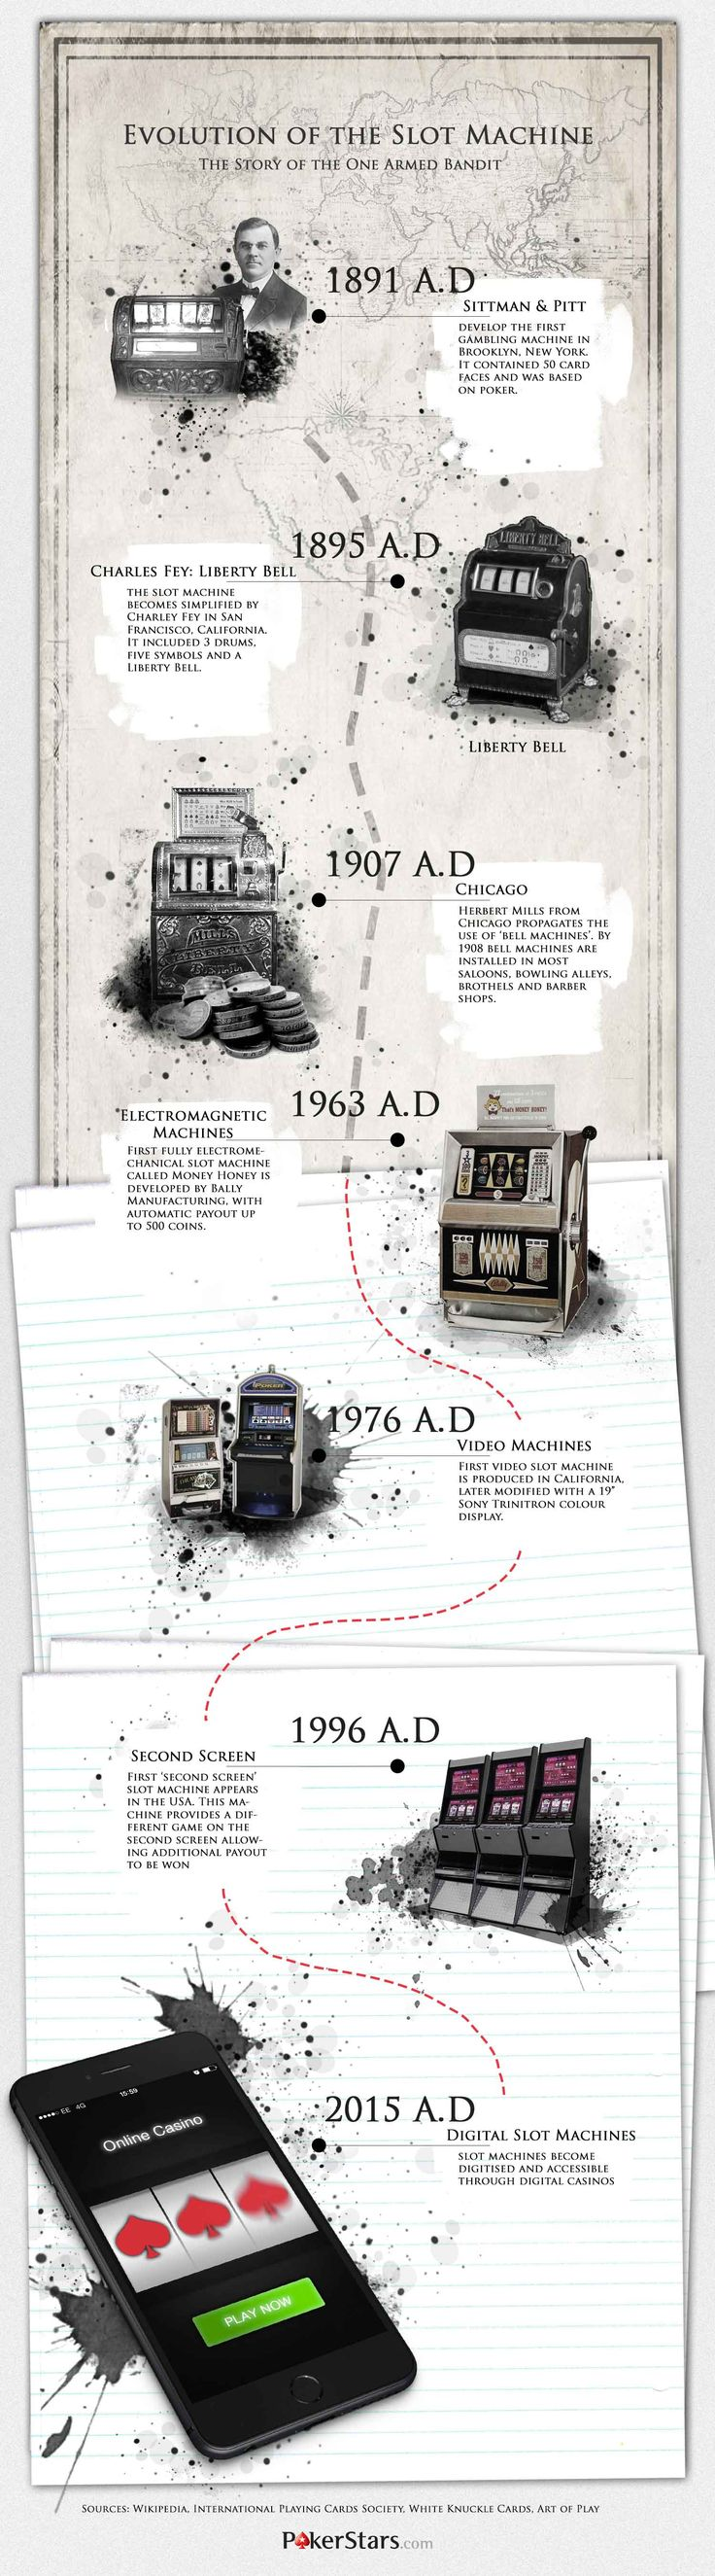 Evolution of the slot machine, and the story of the one armed bandit